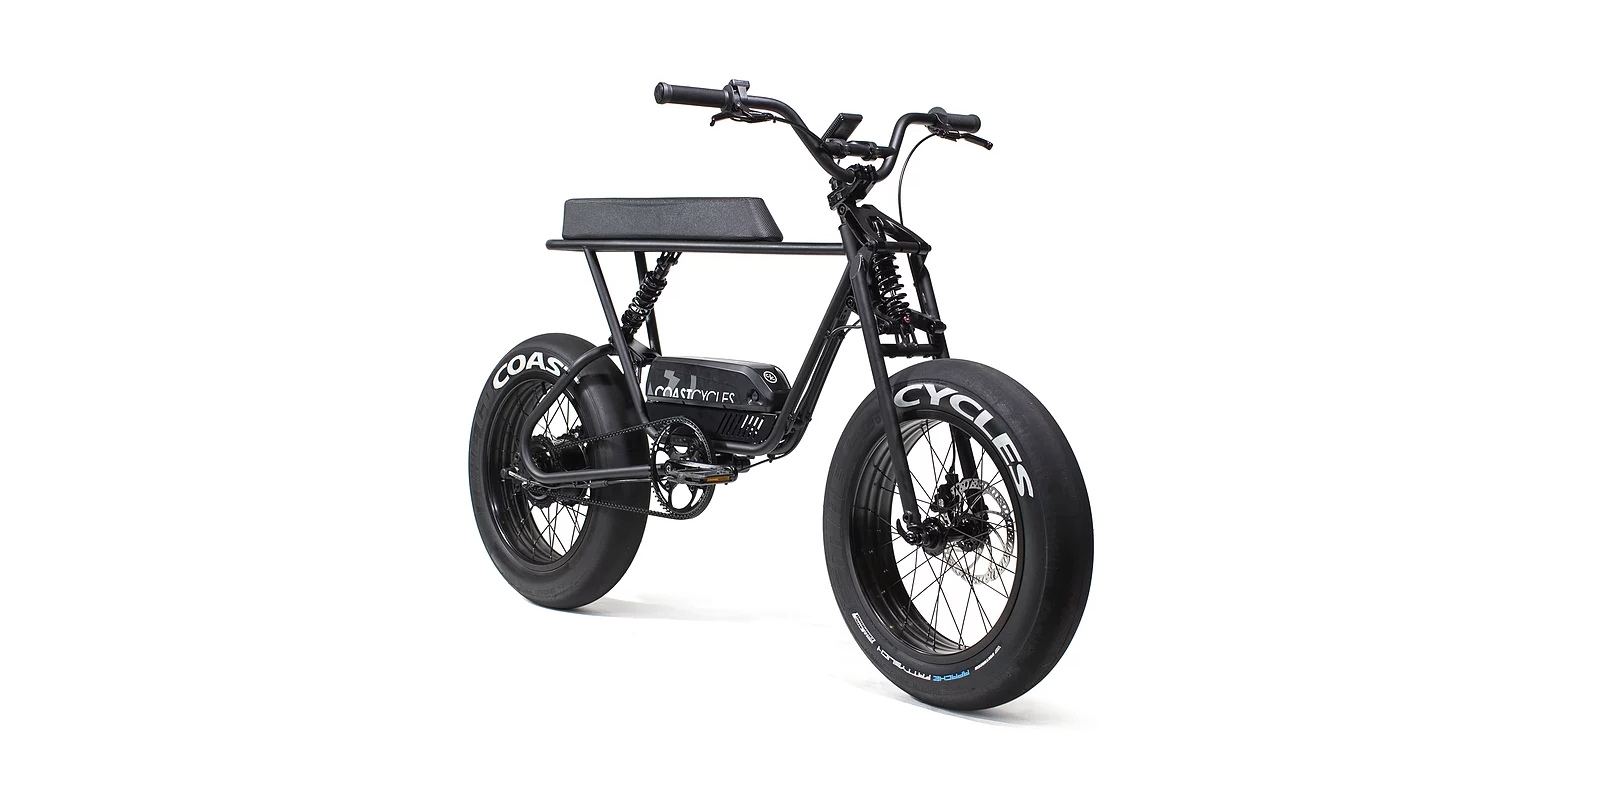 Buzzraw X full suspension electric bikes unveiled by Coast Cycles